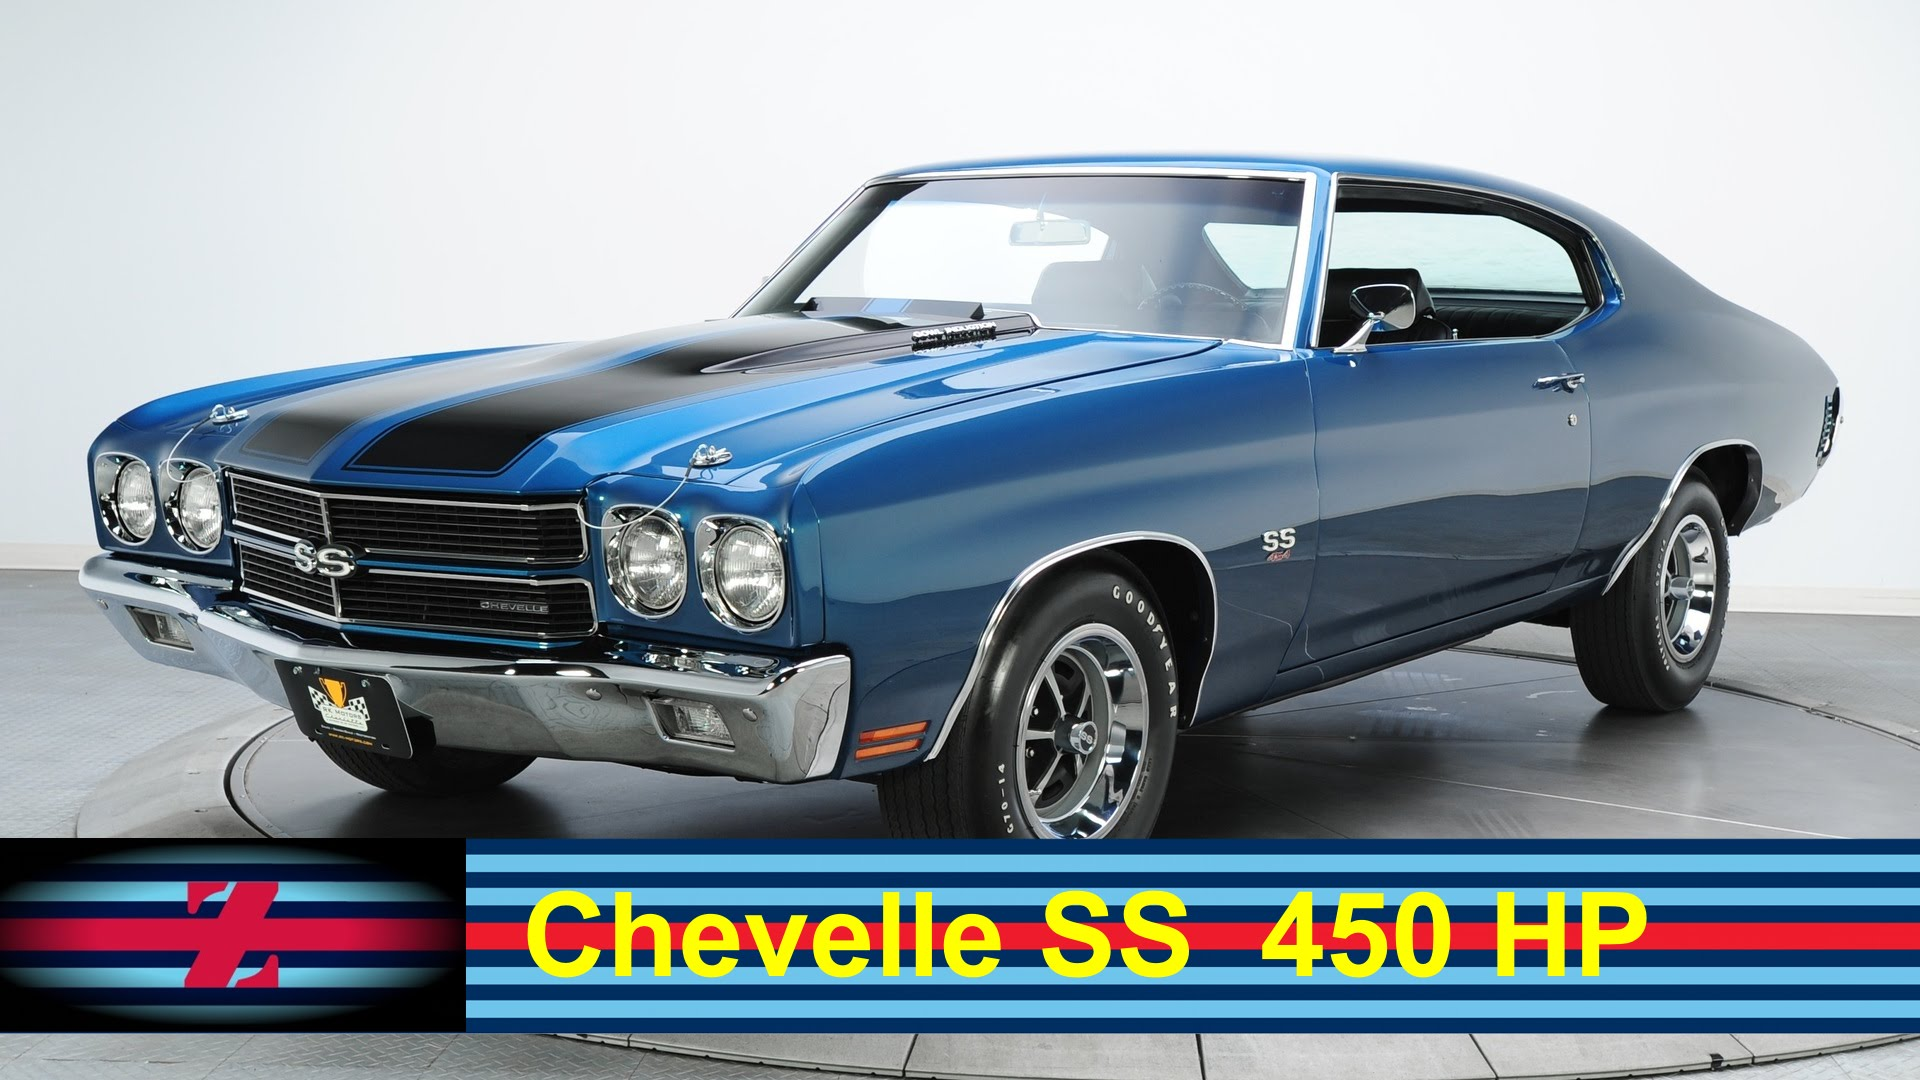 70s Chevelle SS